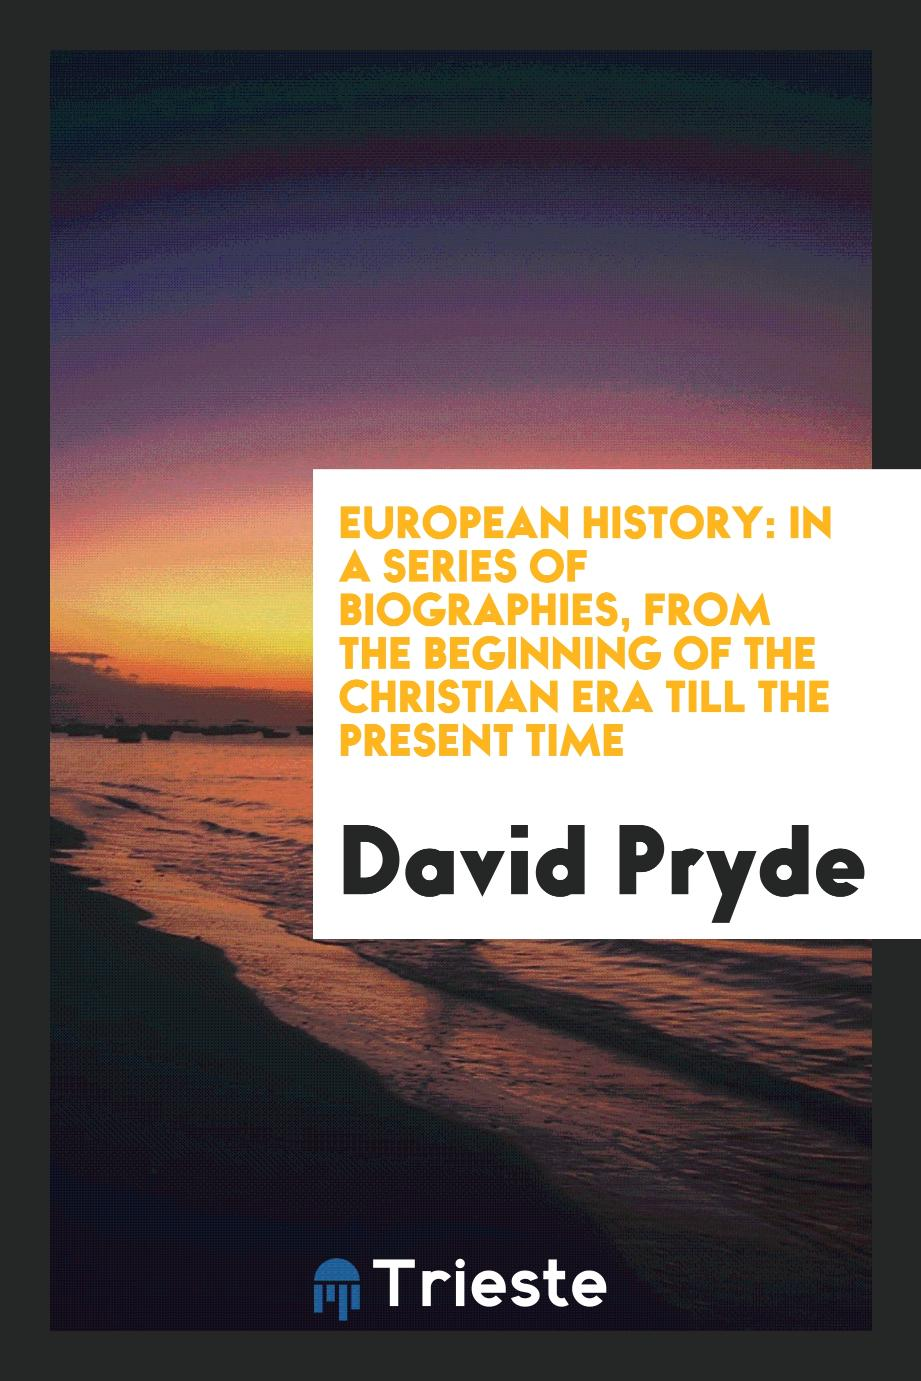 European History: In a Series of Biographies, from the Beginning of the Christian Era Till the Present Time